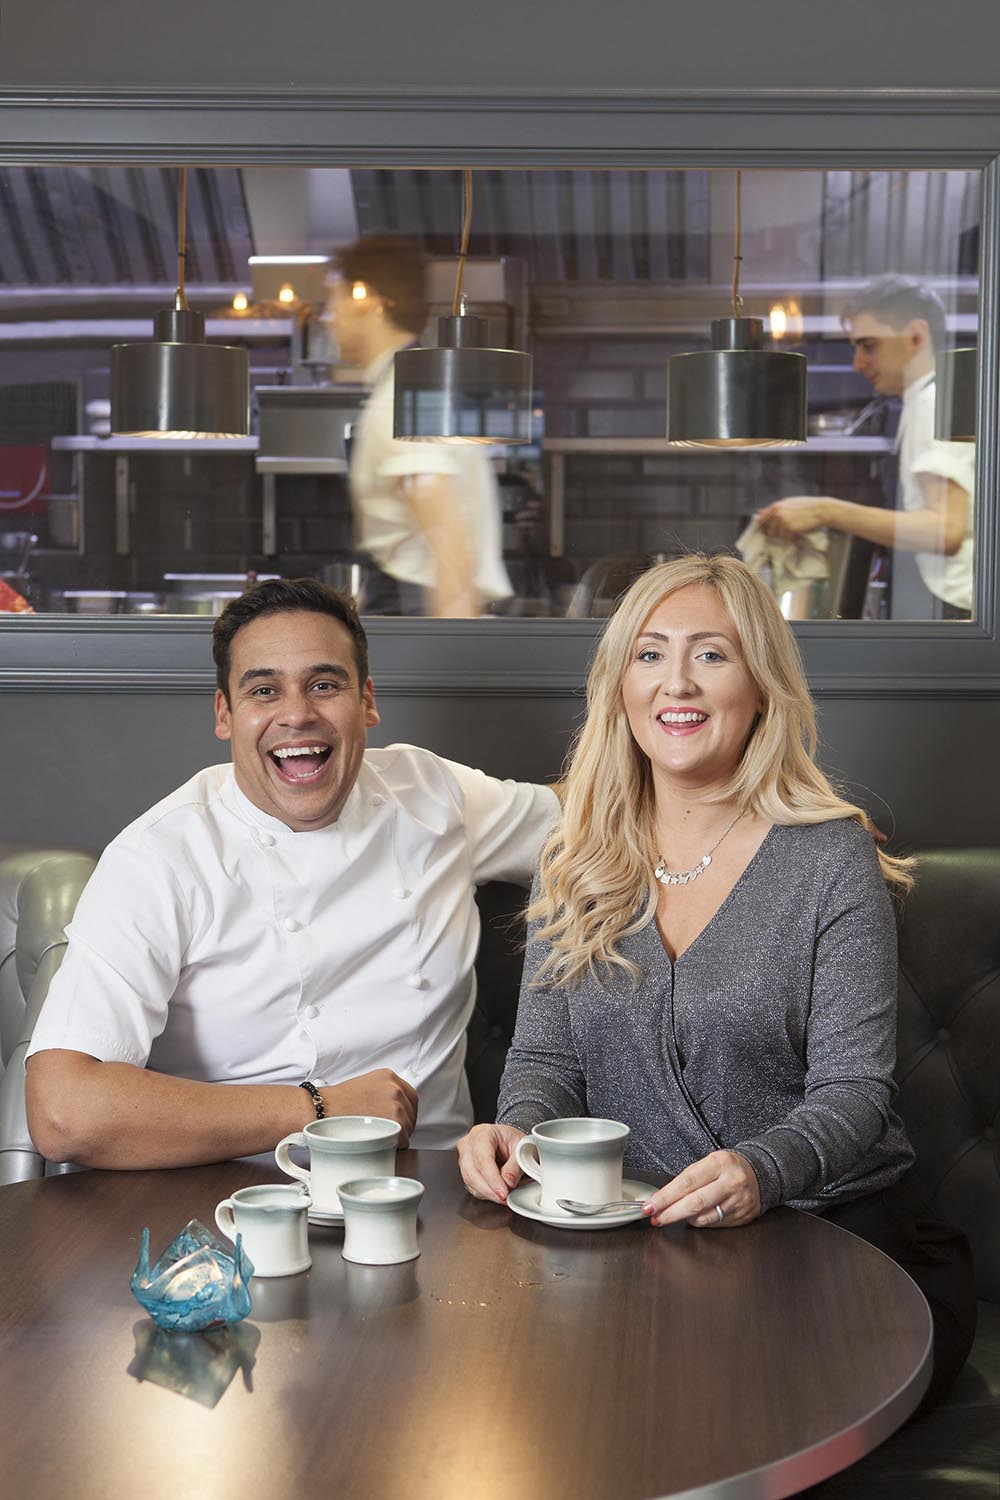 Paul and Emma Ainsworth No.6 Padstow restaurant interiors food portraits for Caterer Magazine